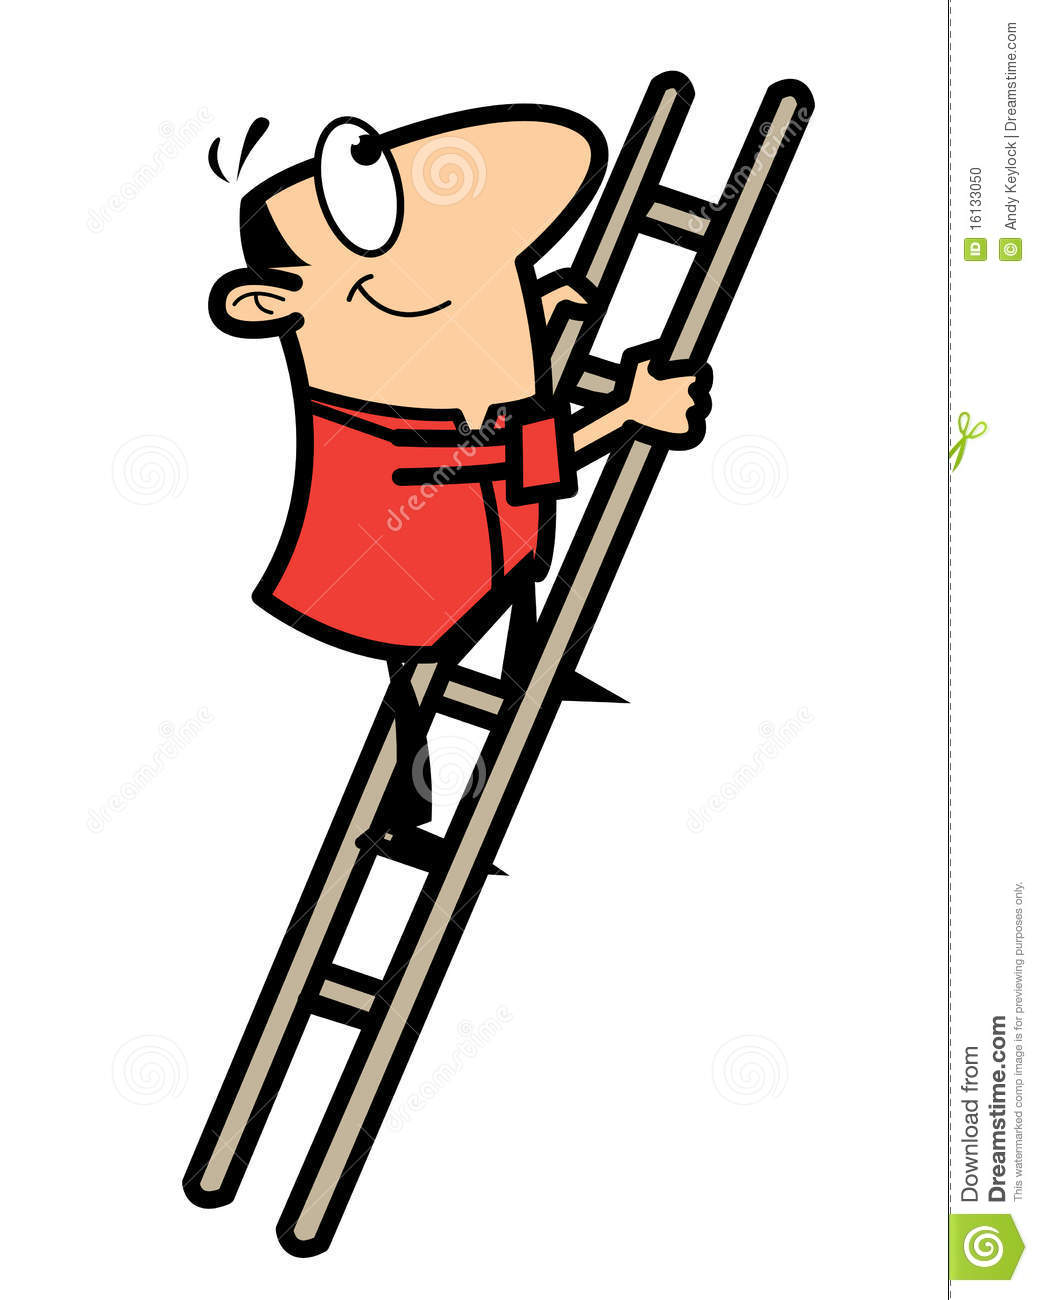 cartoon man climbing ladder stock photo image 16133050 lawyer clip art silhouette lawyer clip art free online